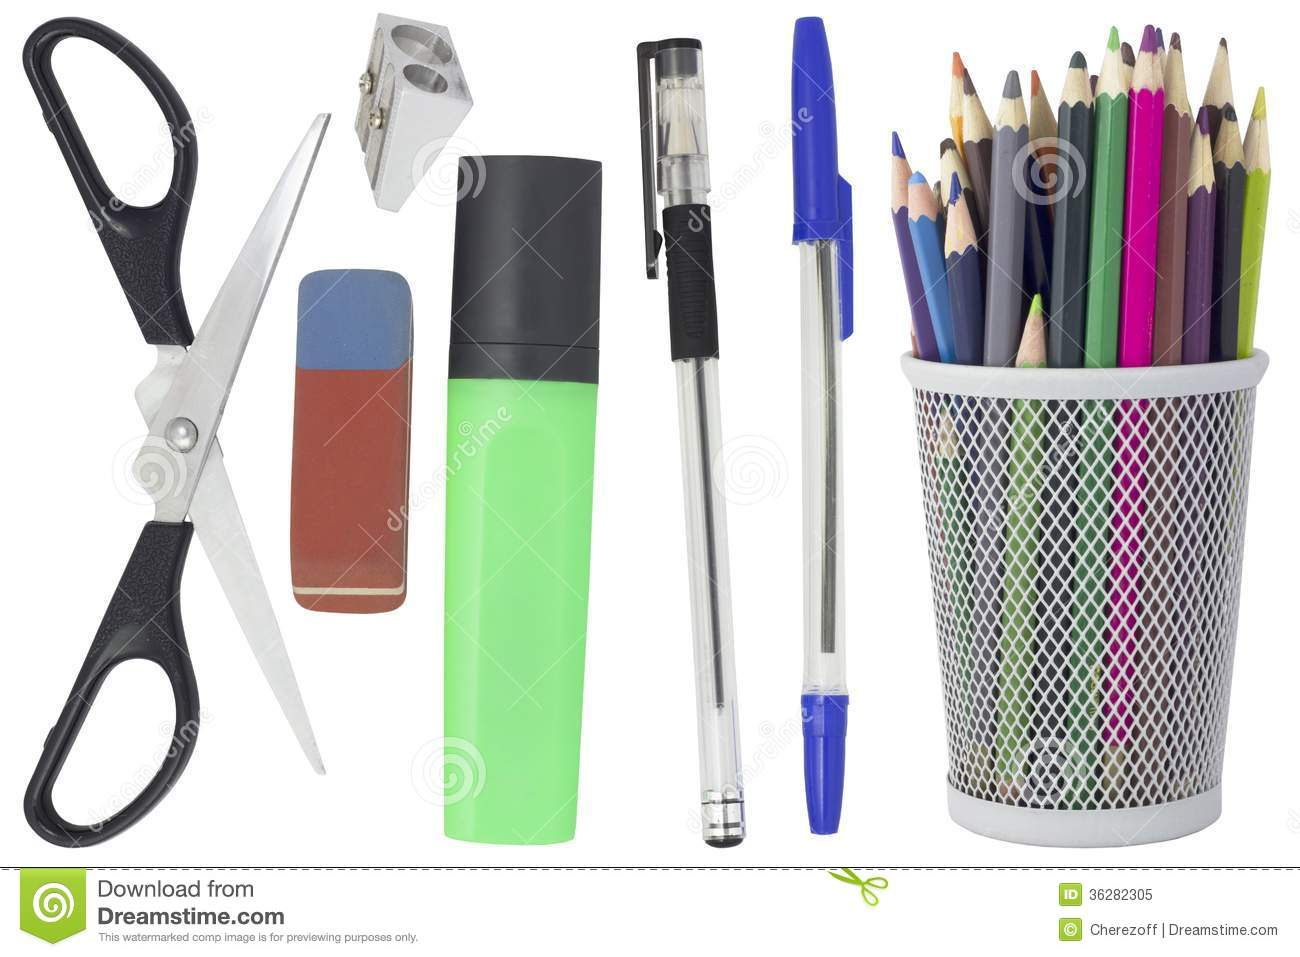 Royalty Free Stock Photo Office Supplies Pencils Pens Scissors Markers Eraser Pencil Sharpener Isolated White Background Image36282305 on ink eraser